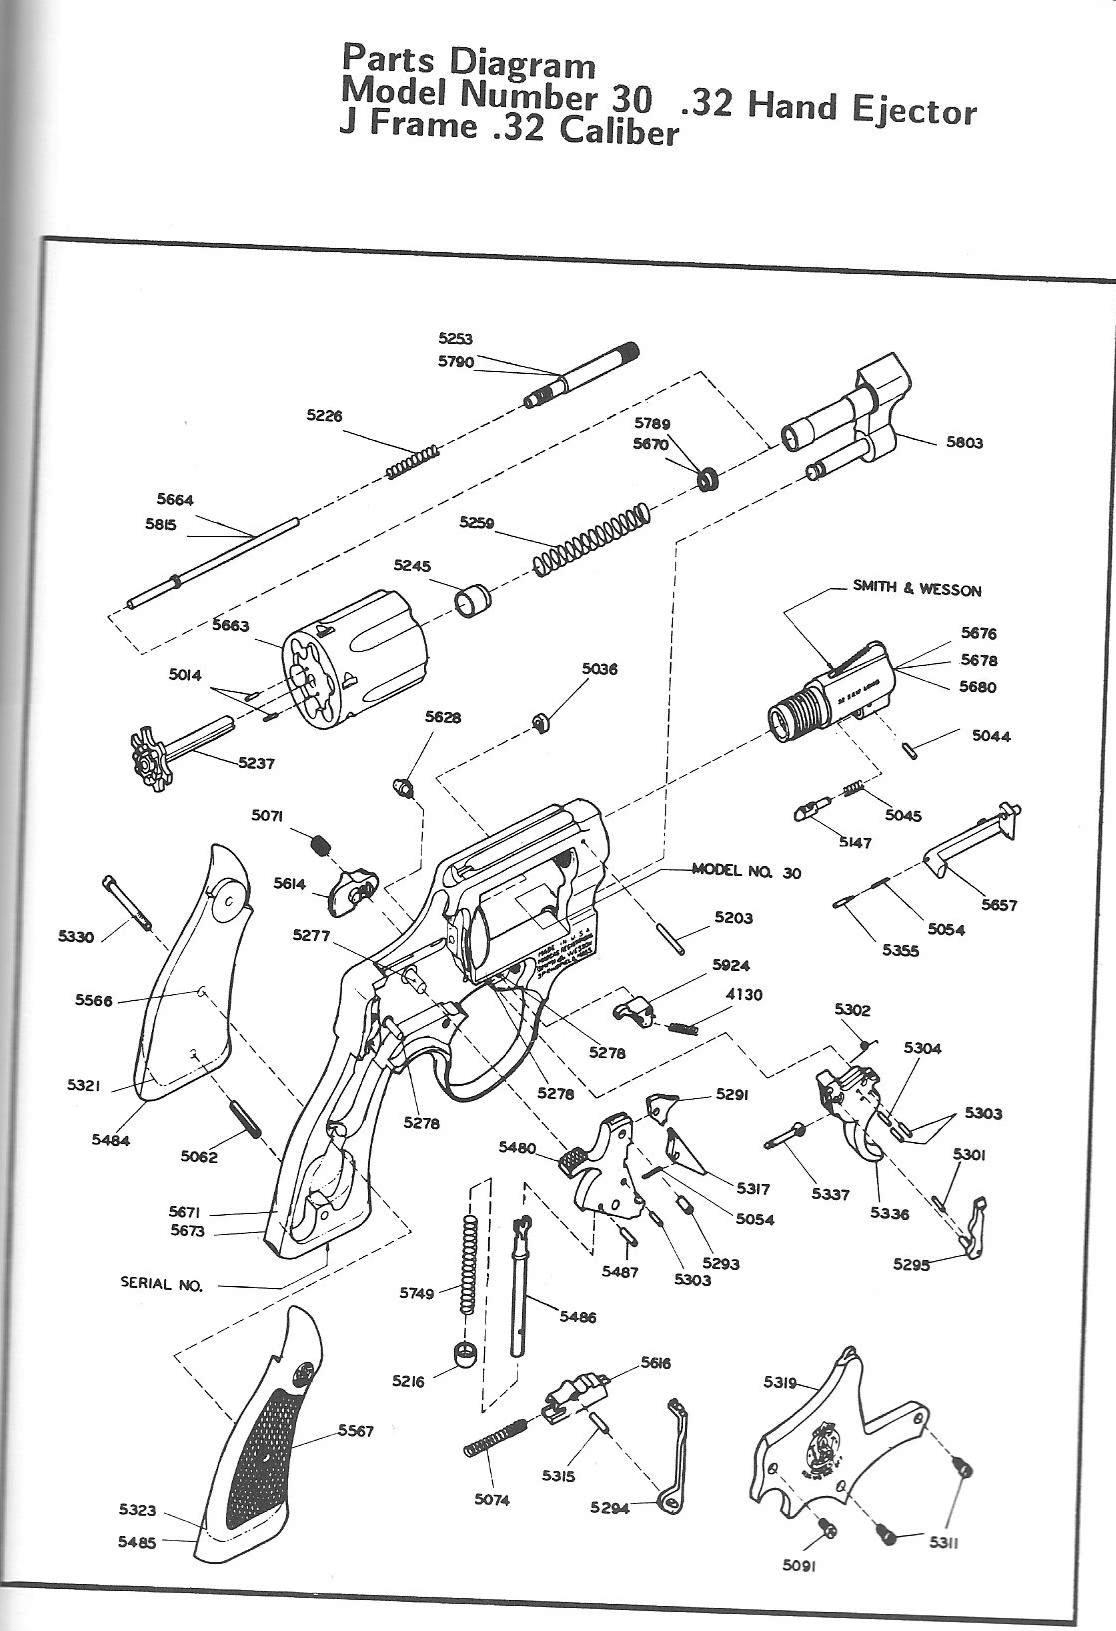 32 Long Hand Ejector Model Question